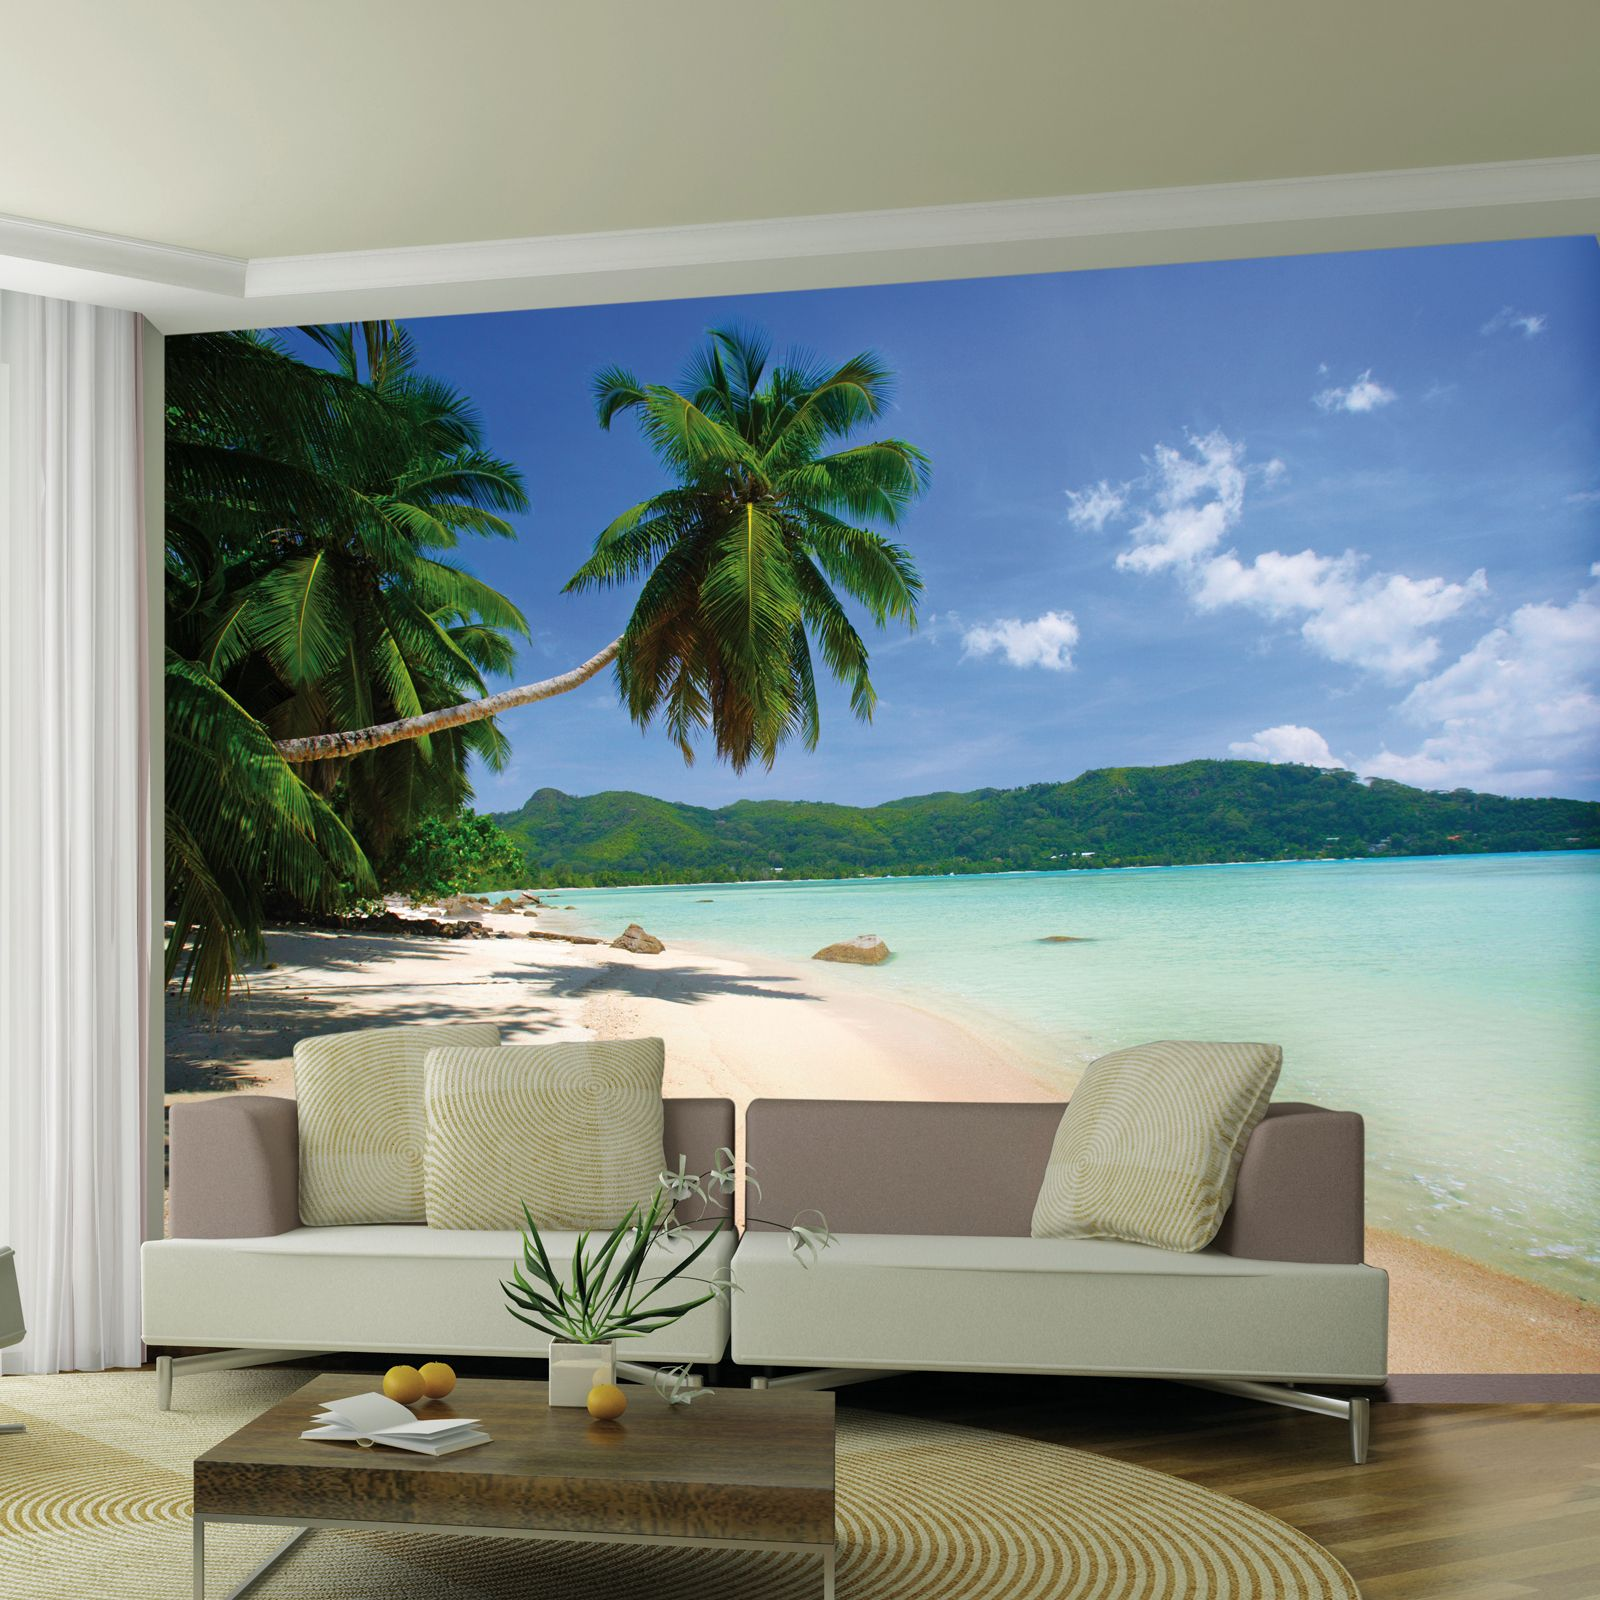 Déco Murale Diy Details About Desert Island Beach Wallpaper Wall Mural 2 32m X 3 15m Room Decor